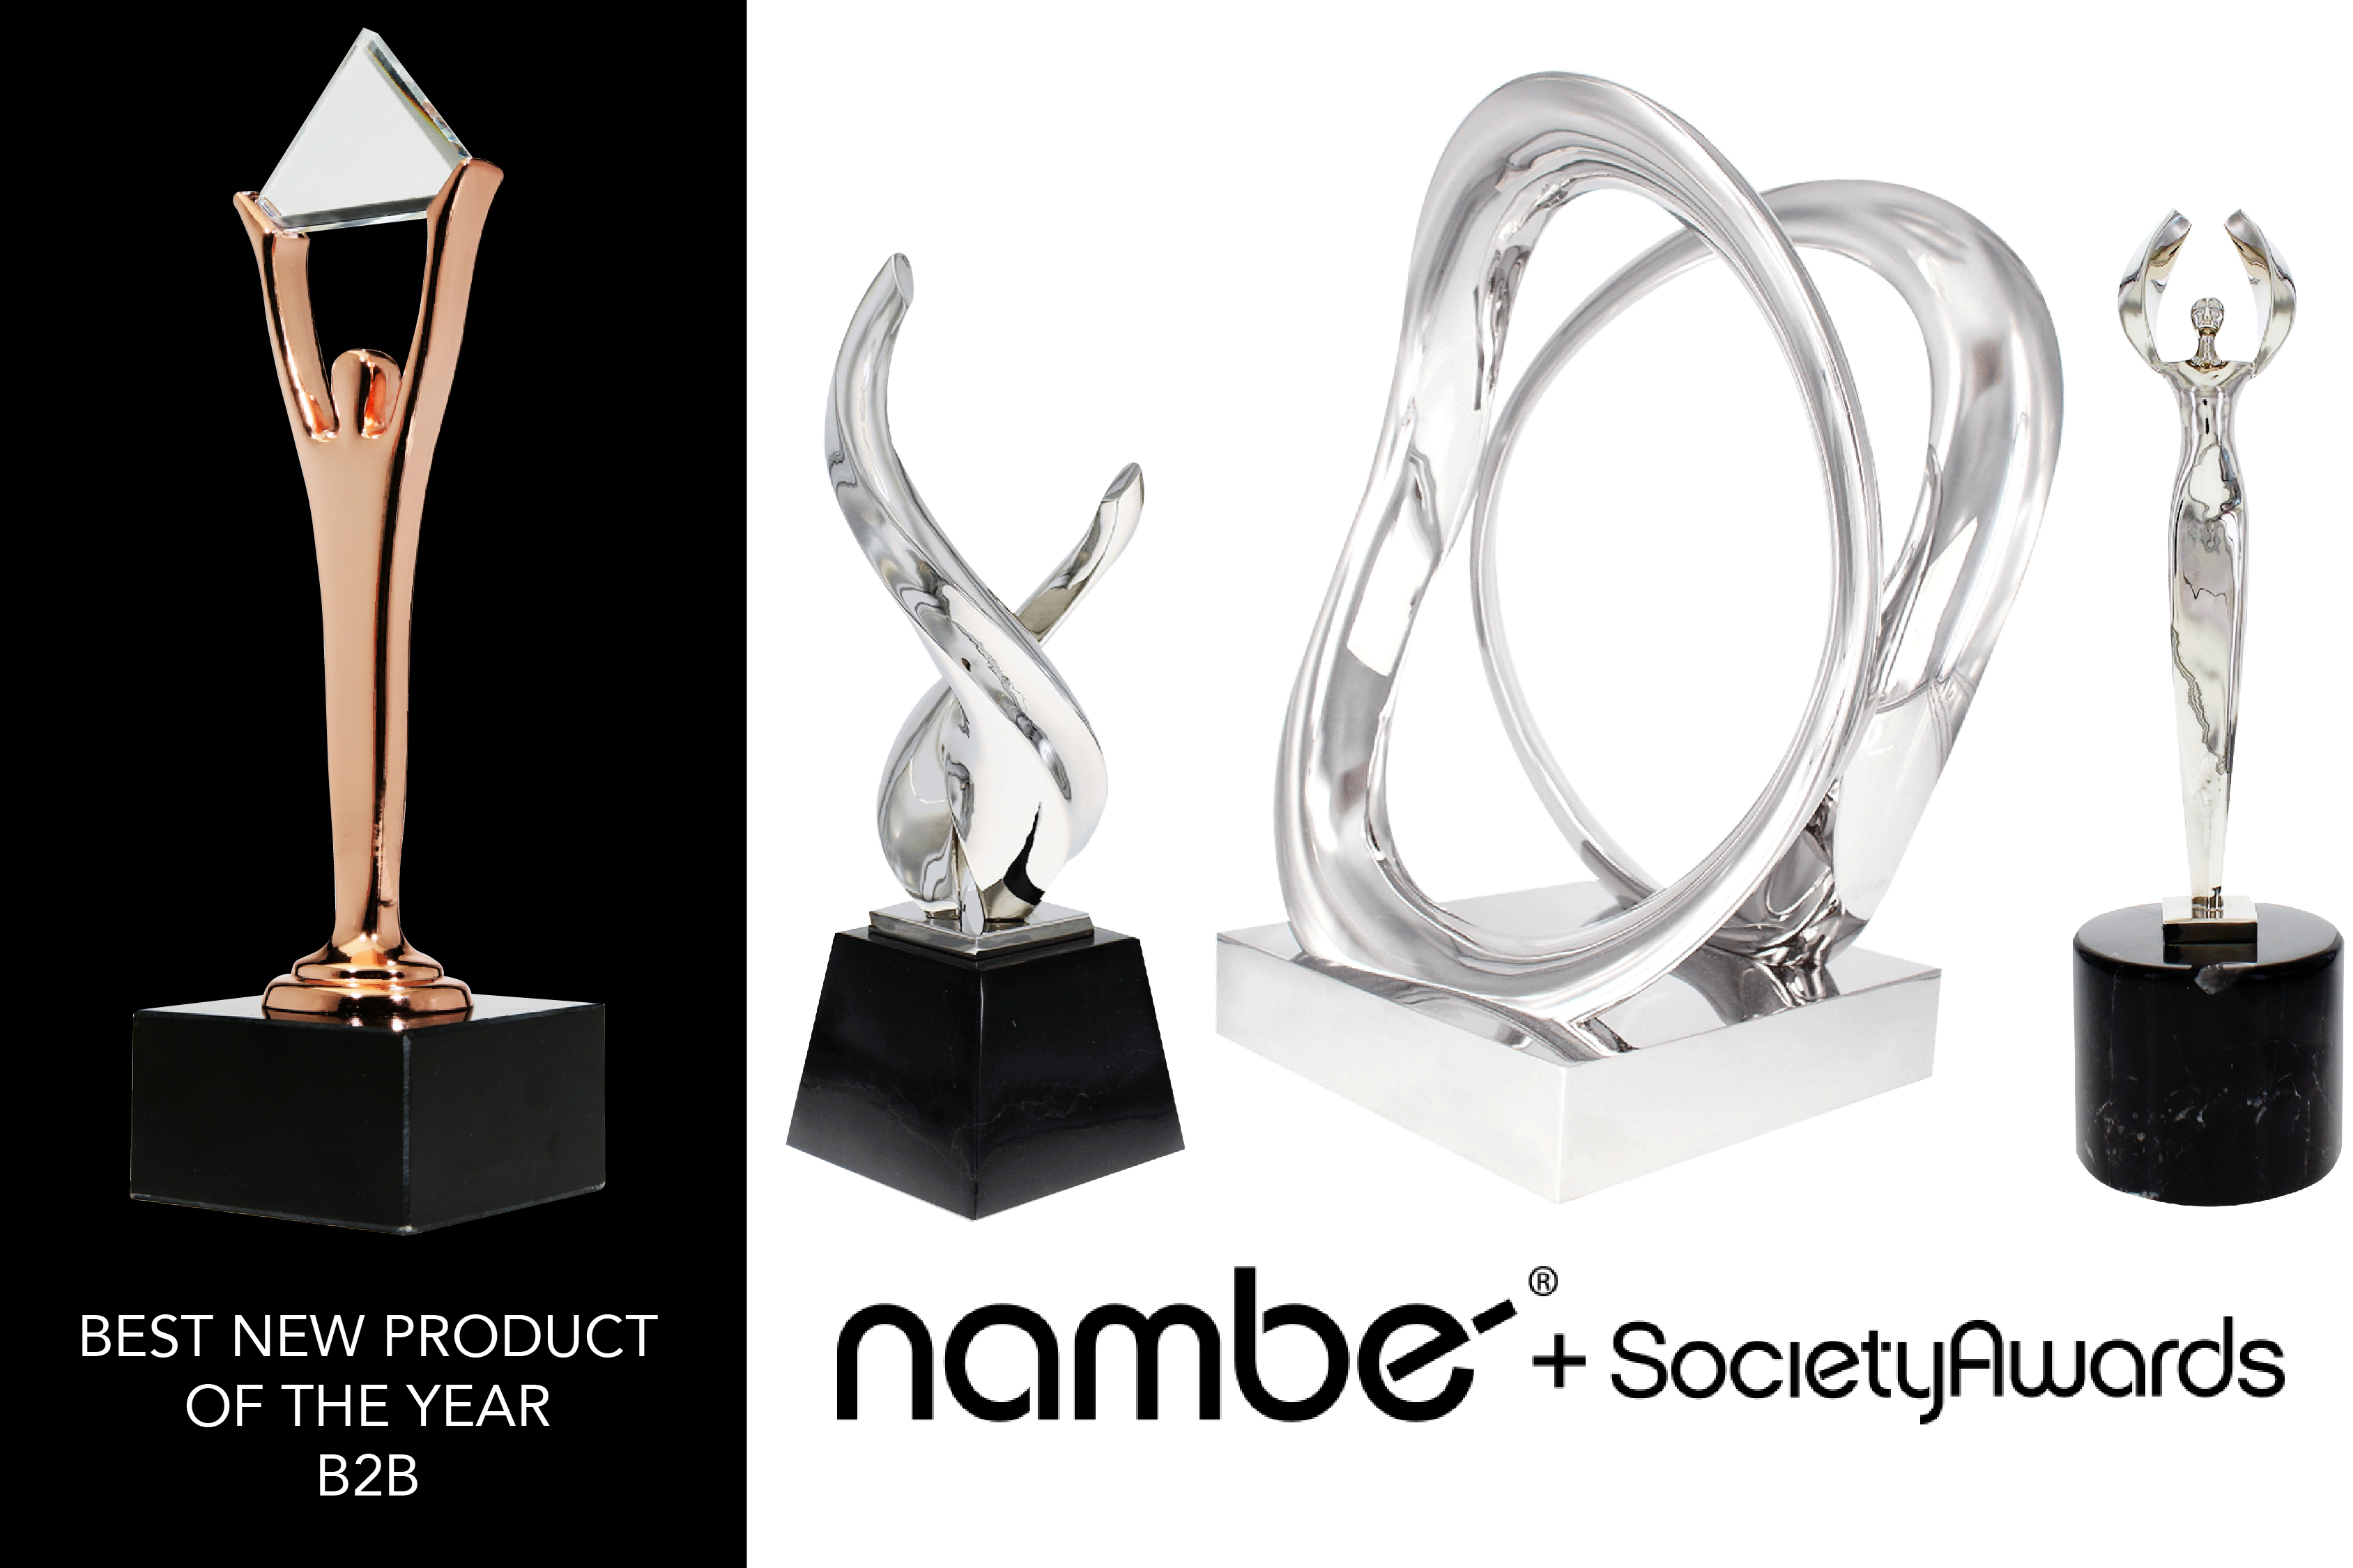 Nambé + Society Awards honored with Bronze Stevie IBA